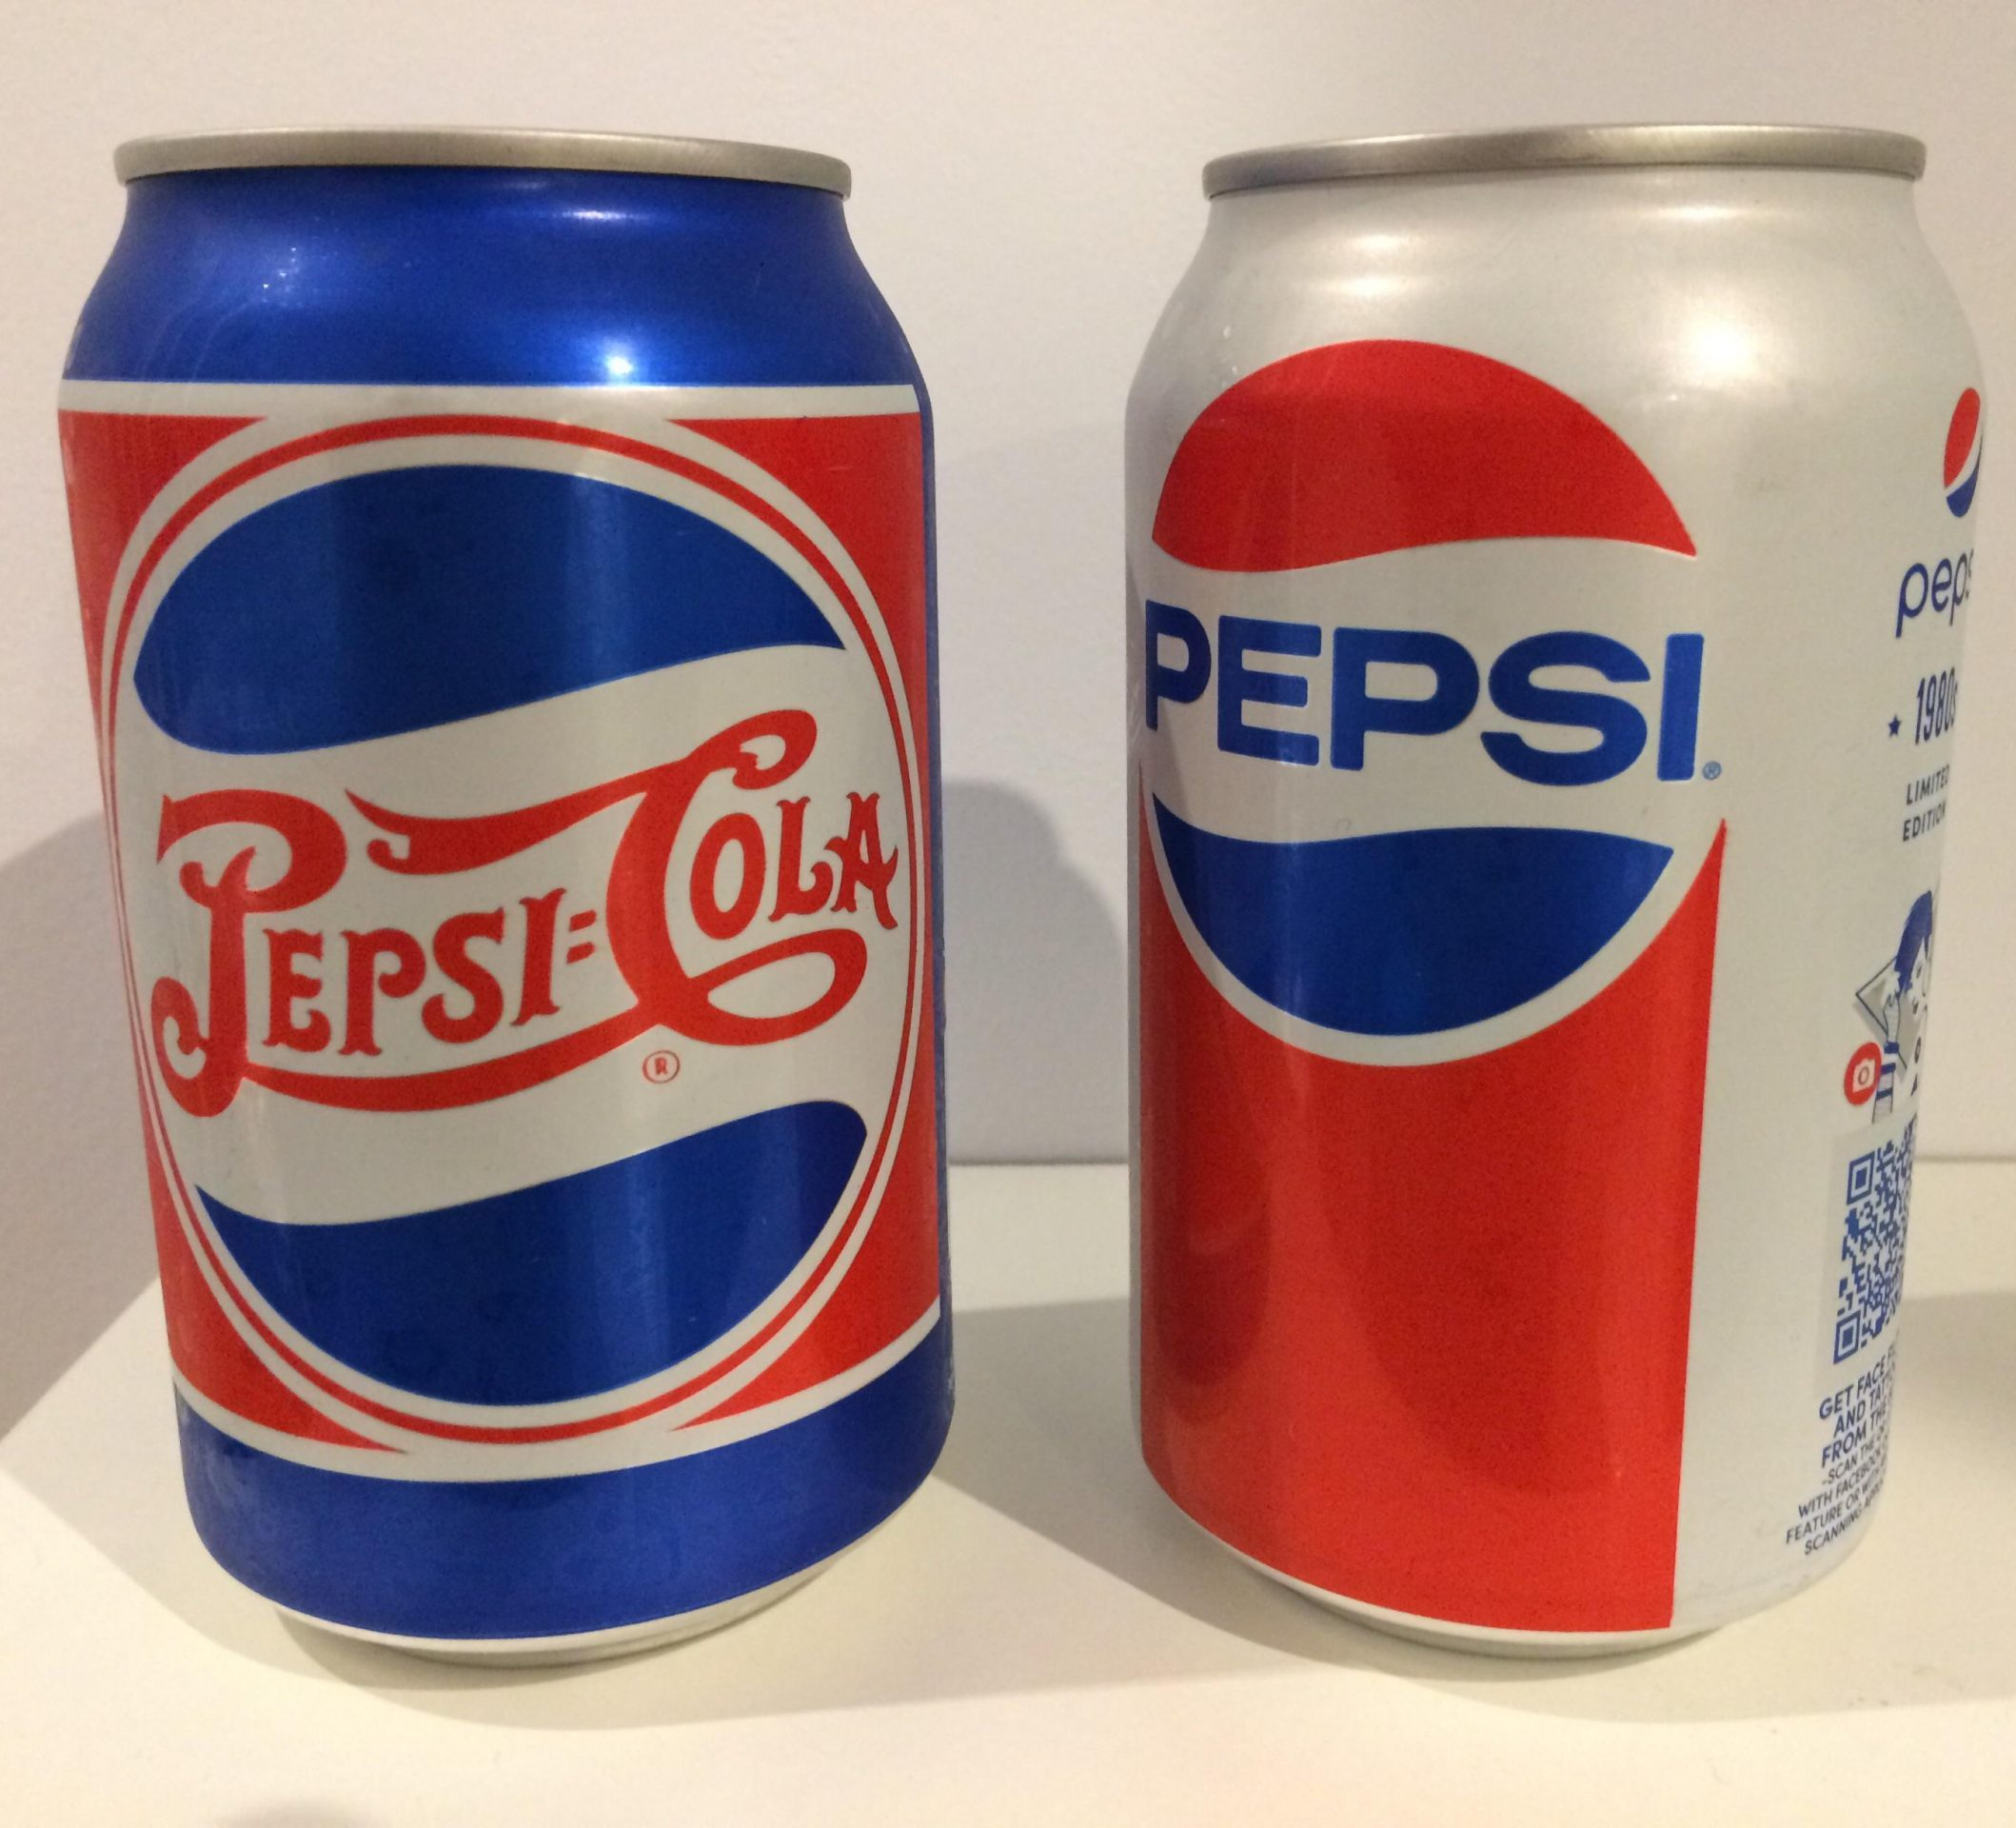 1 176 scaled e1607690513171 The Pepsi Bottle Cap Competition That Led To Rioting, Lawsuits and Deaths